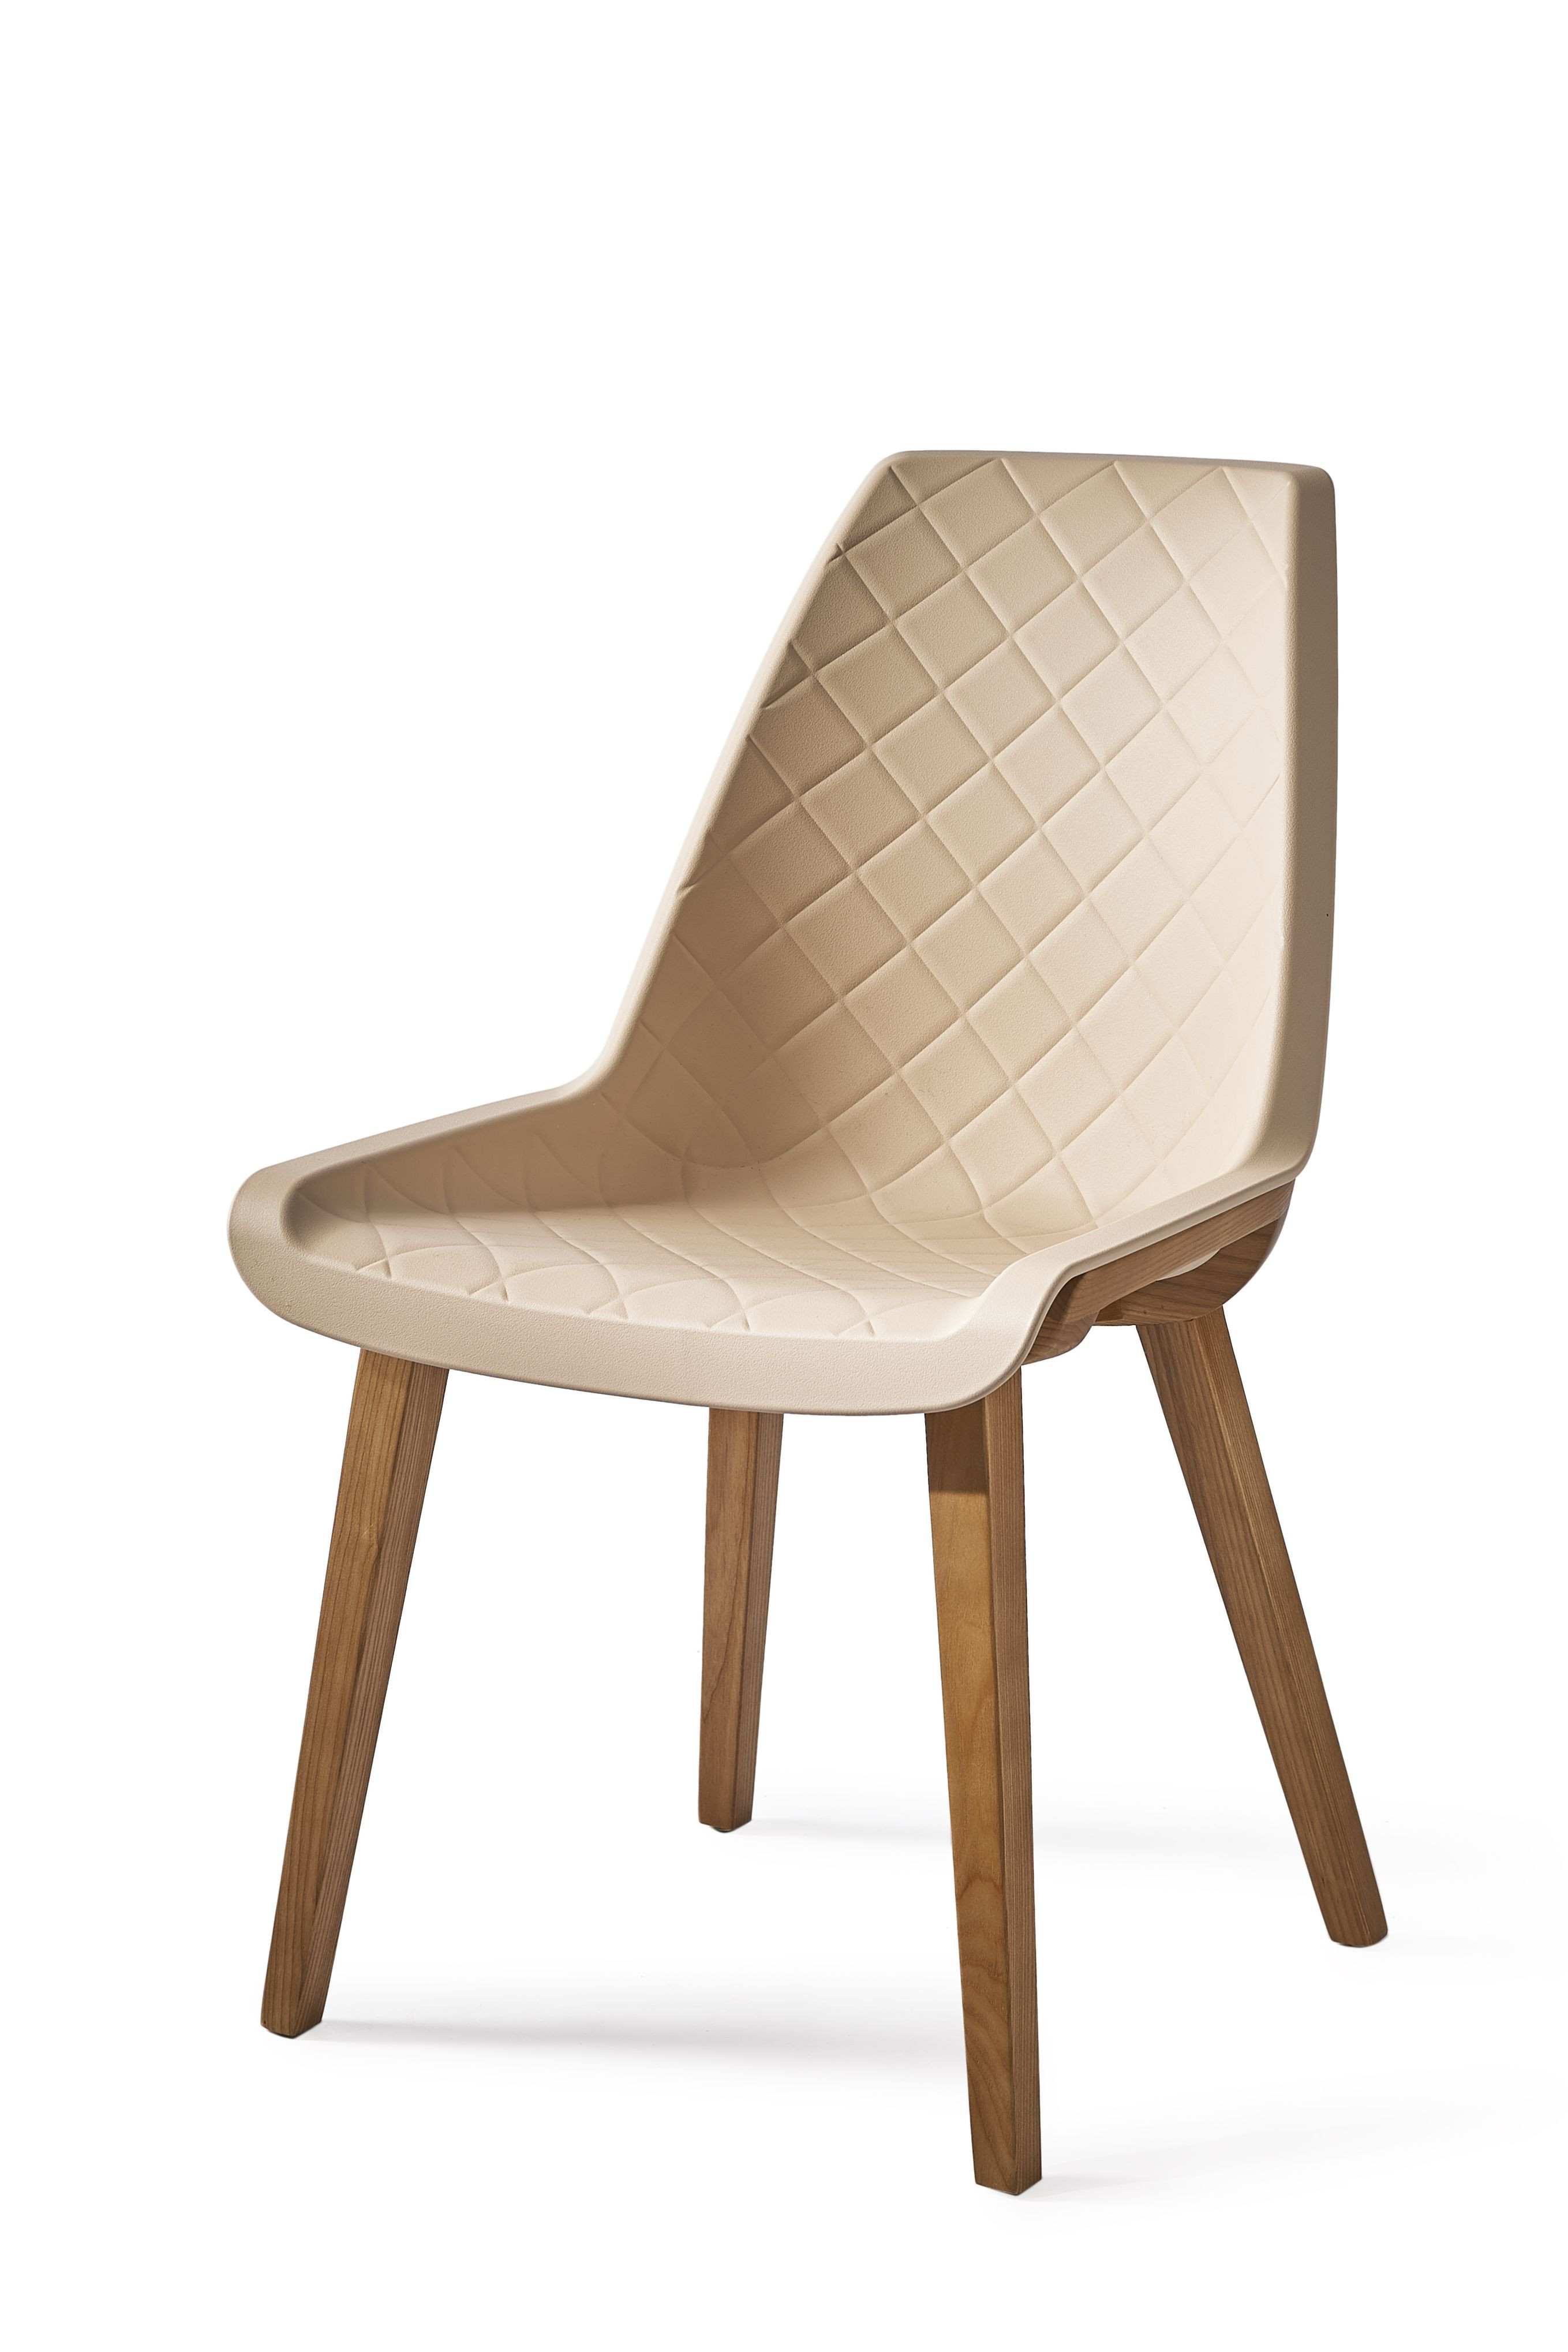 Amsterdam City Dining Chair silky blush / Rivièra Maison